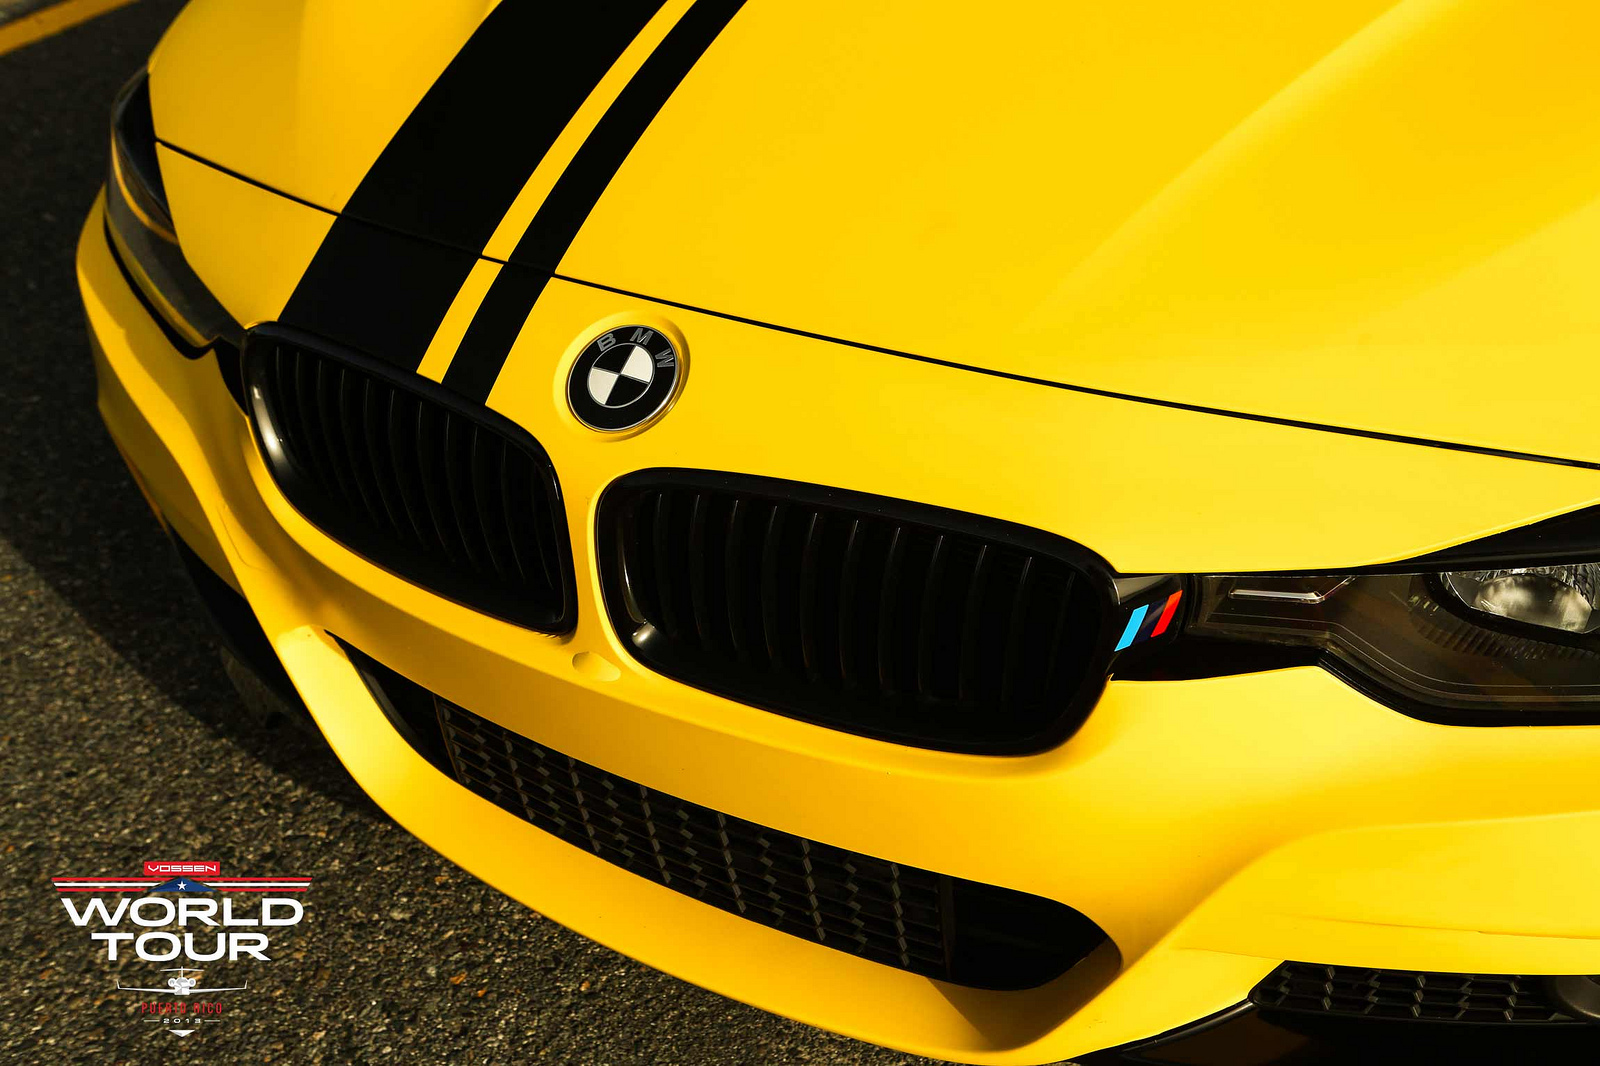 This Yellow 3 Series Will Make You Love BMW - autoevolution